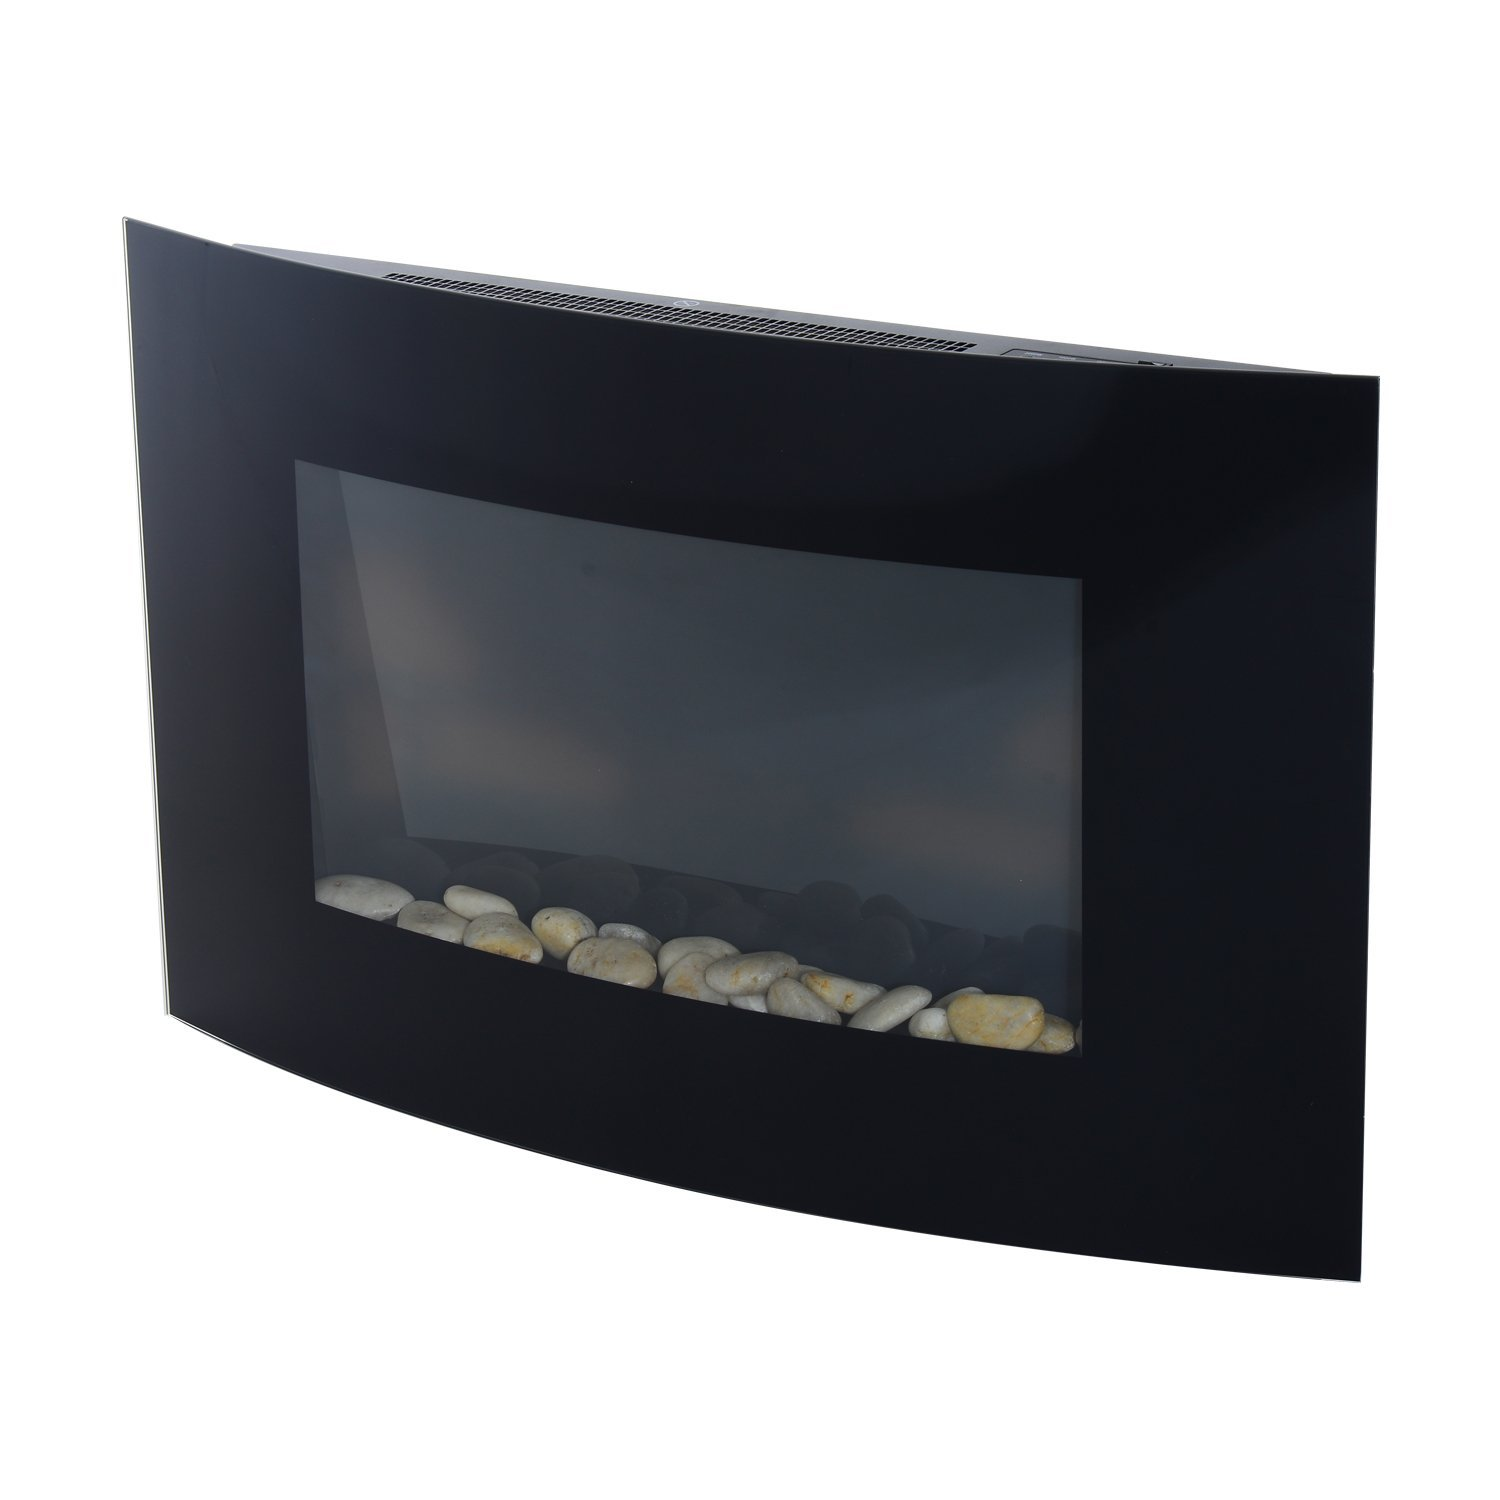 HOMCOM Stainless Steel Electric Fireplace With Tempered Glass 900 W/1800 W 65x11.4x52 Cm Black